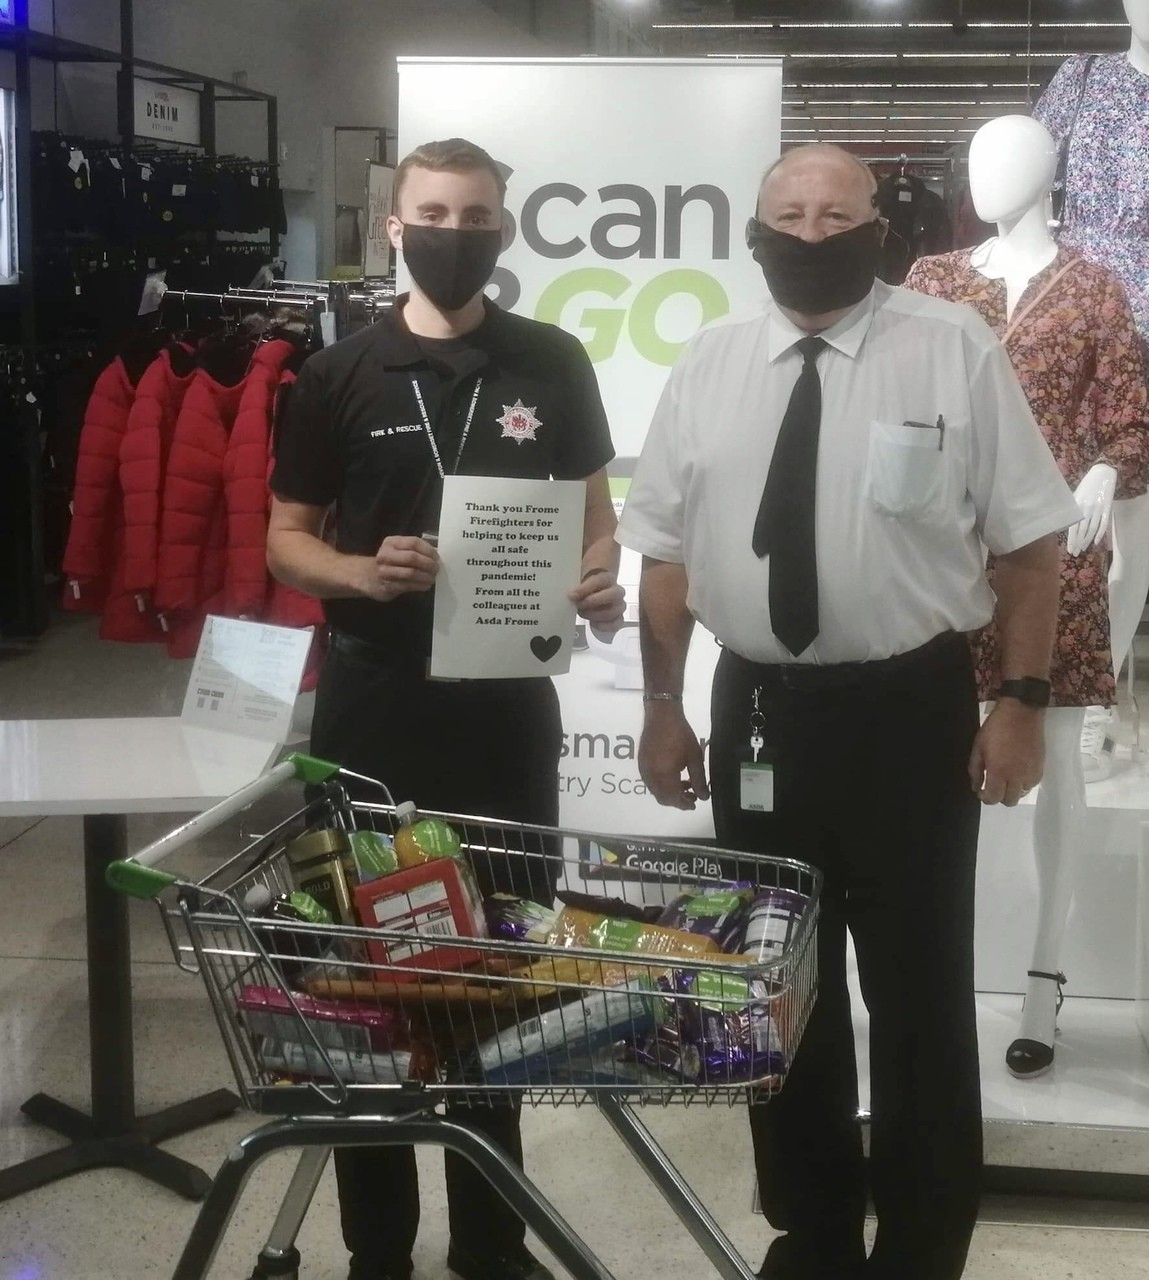 Thank you Frome Firefighters   Asda Frome